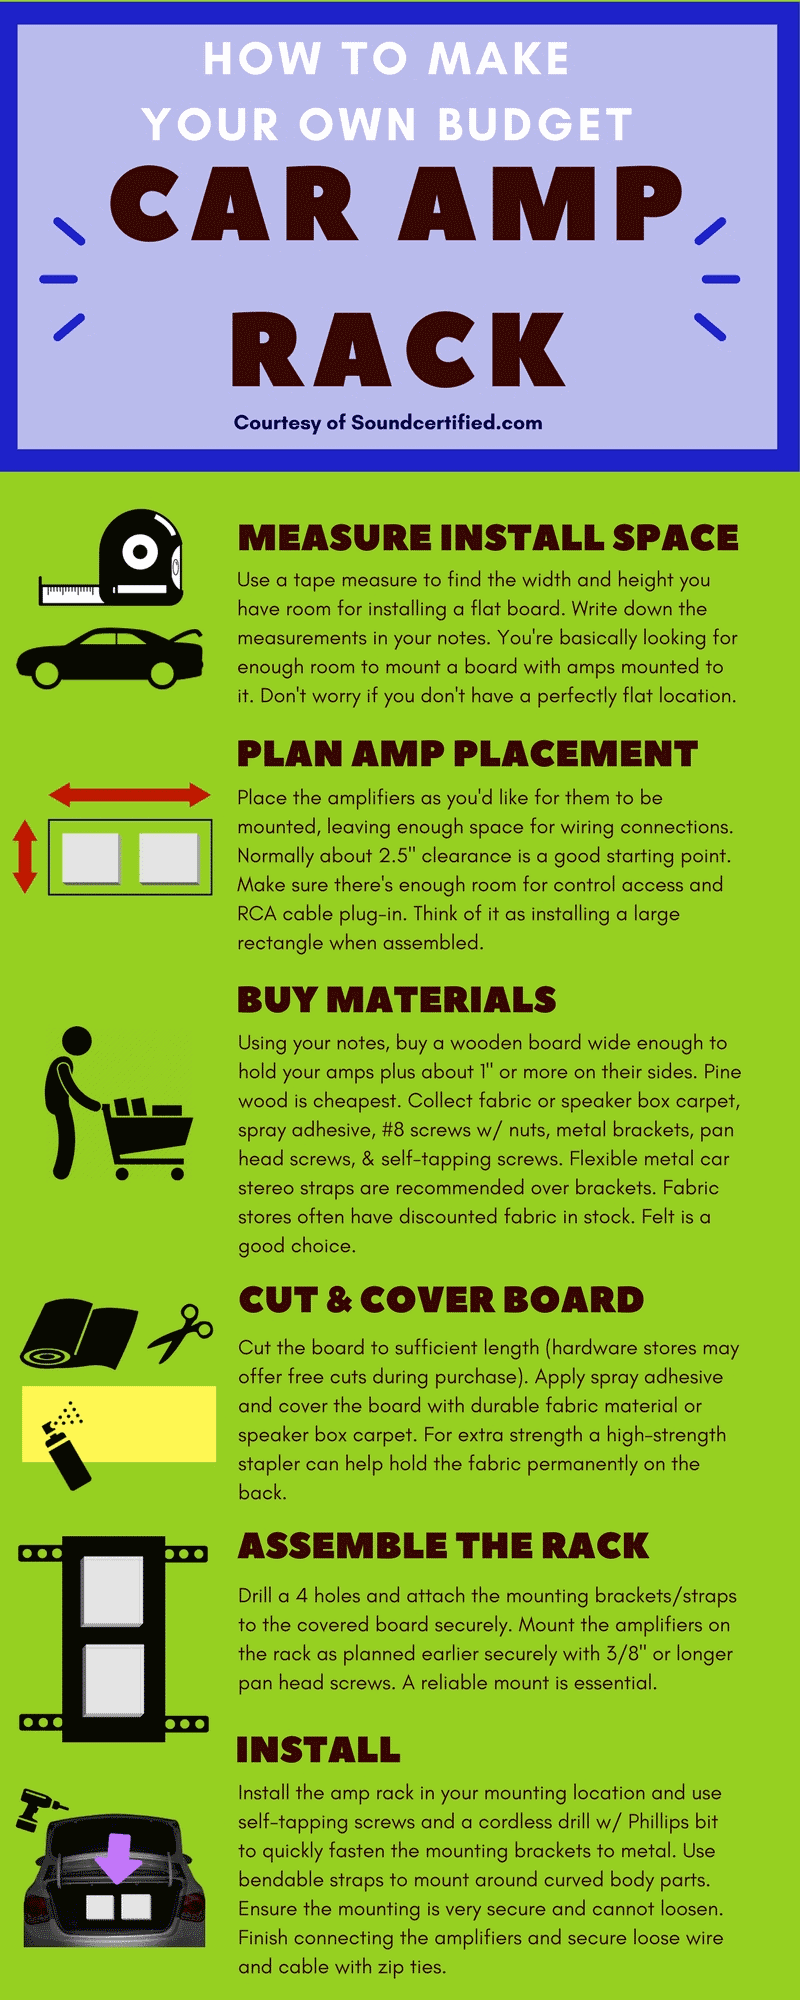 DIY car amp rack infographic image